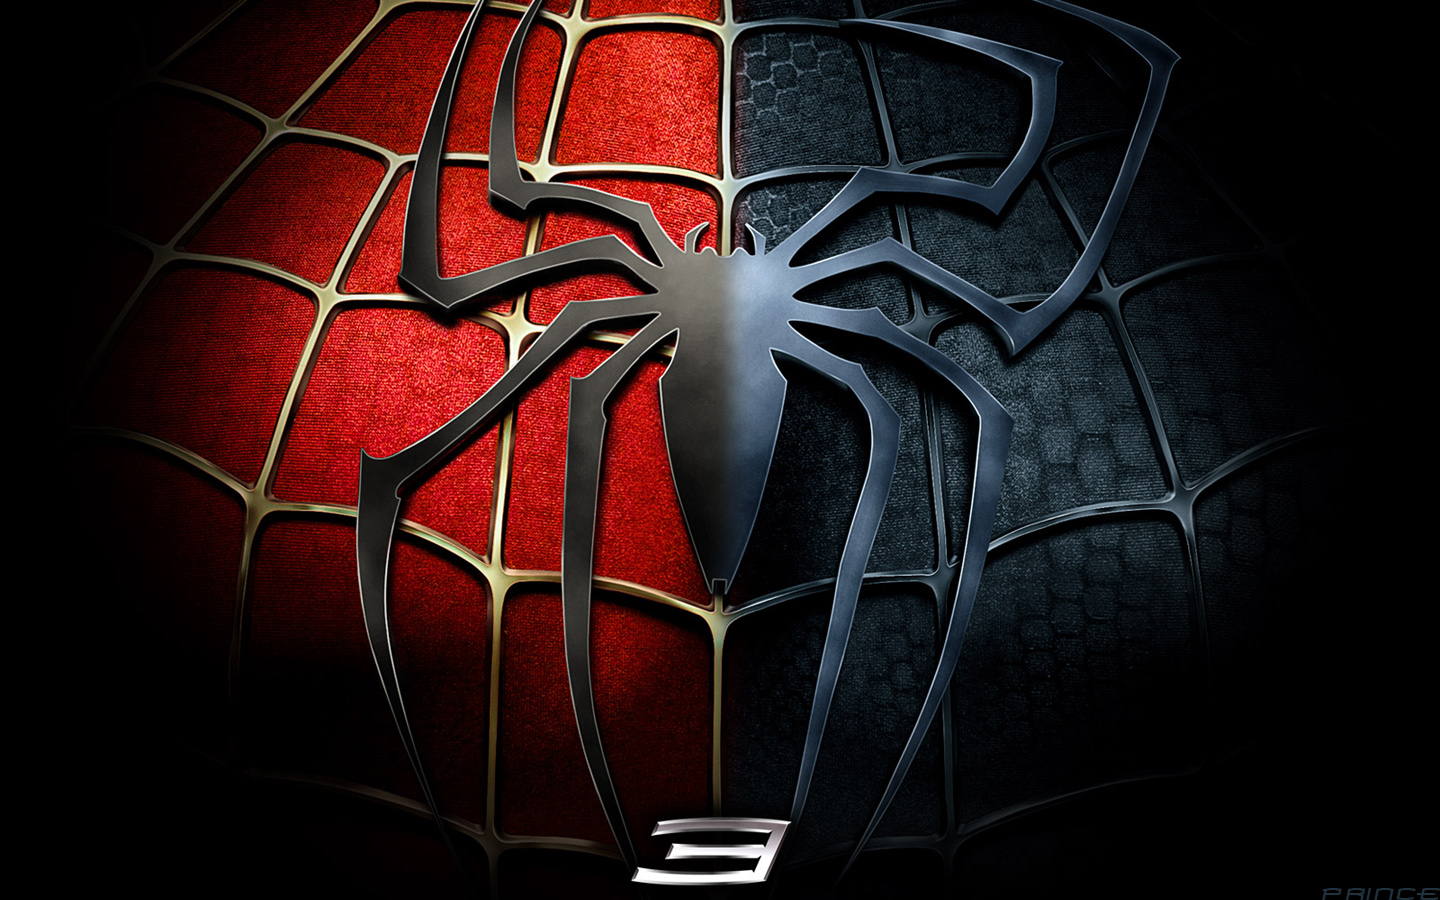 Spider Man 3 hd wallpapers 1440x900